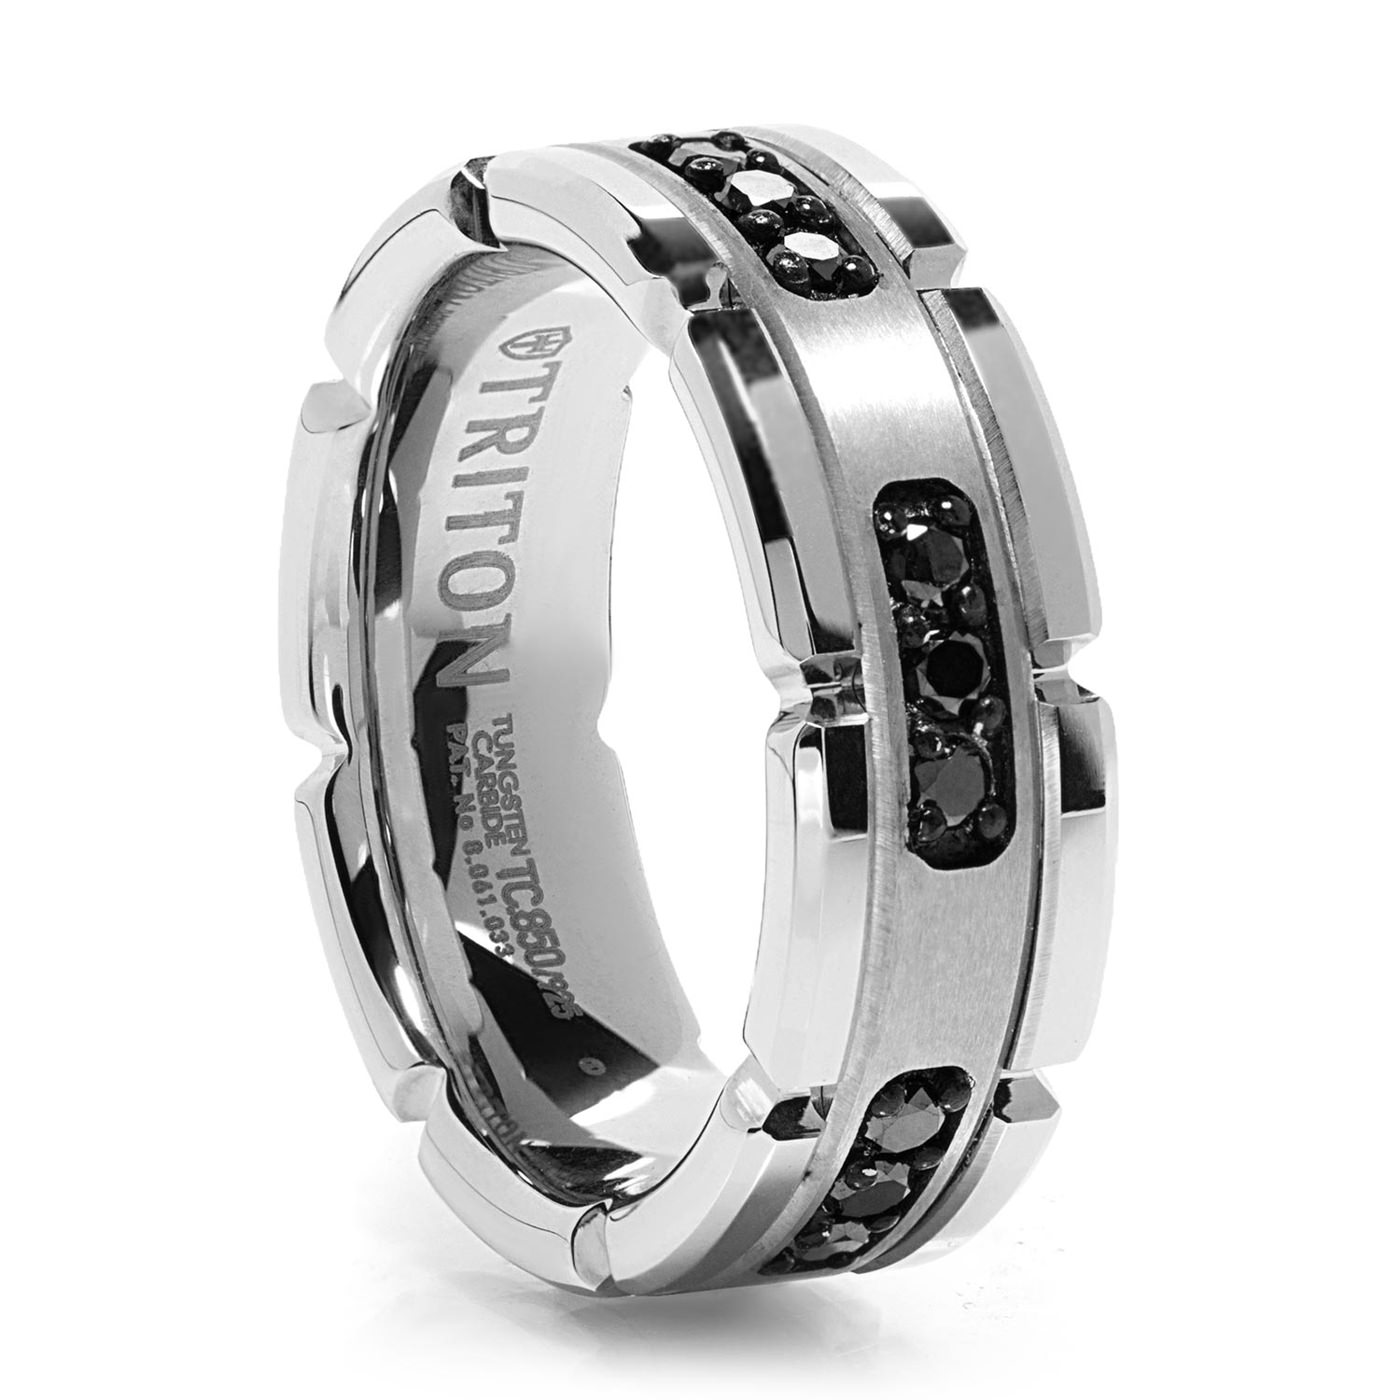 round s wedding men download size cut womens inspirational bands his hers full awesome unique pcs band tungsten halo women